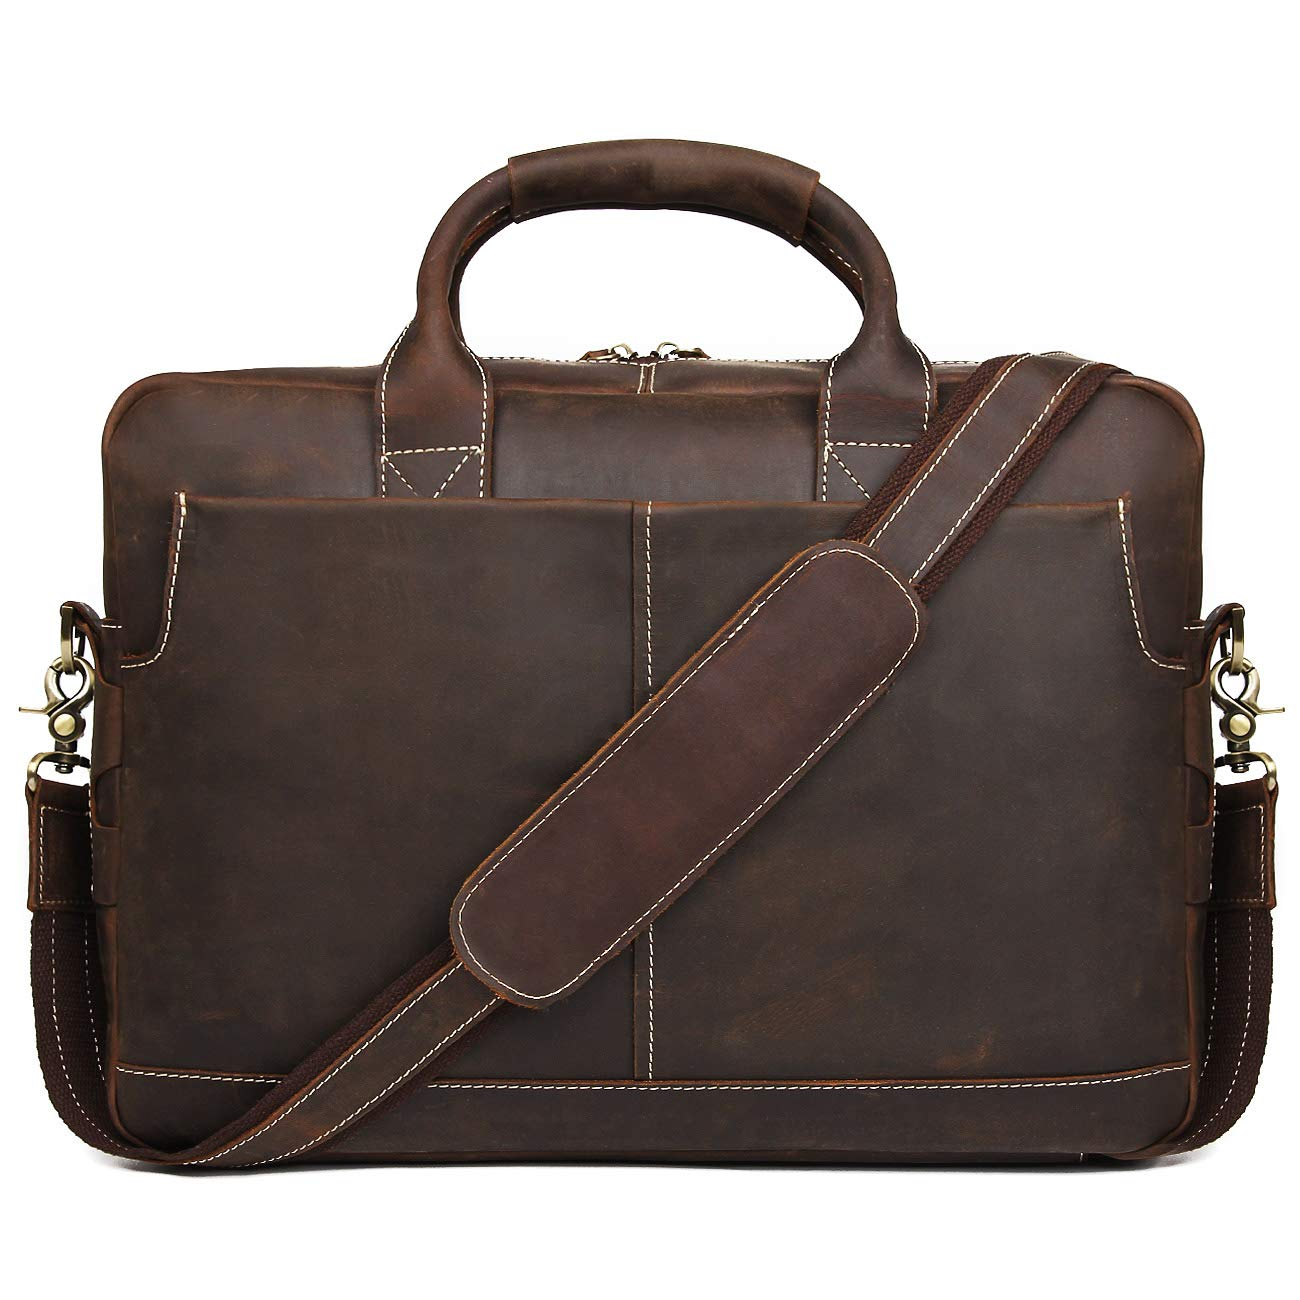 Augus Leather Laptop Briefcase for Men,Waterproof Travel Messenger Duffle Bags 15.6 Inch Laptop Bag,Brown